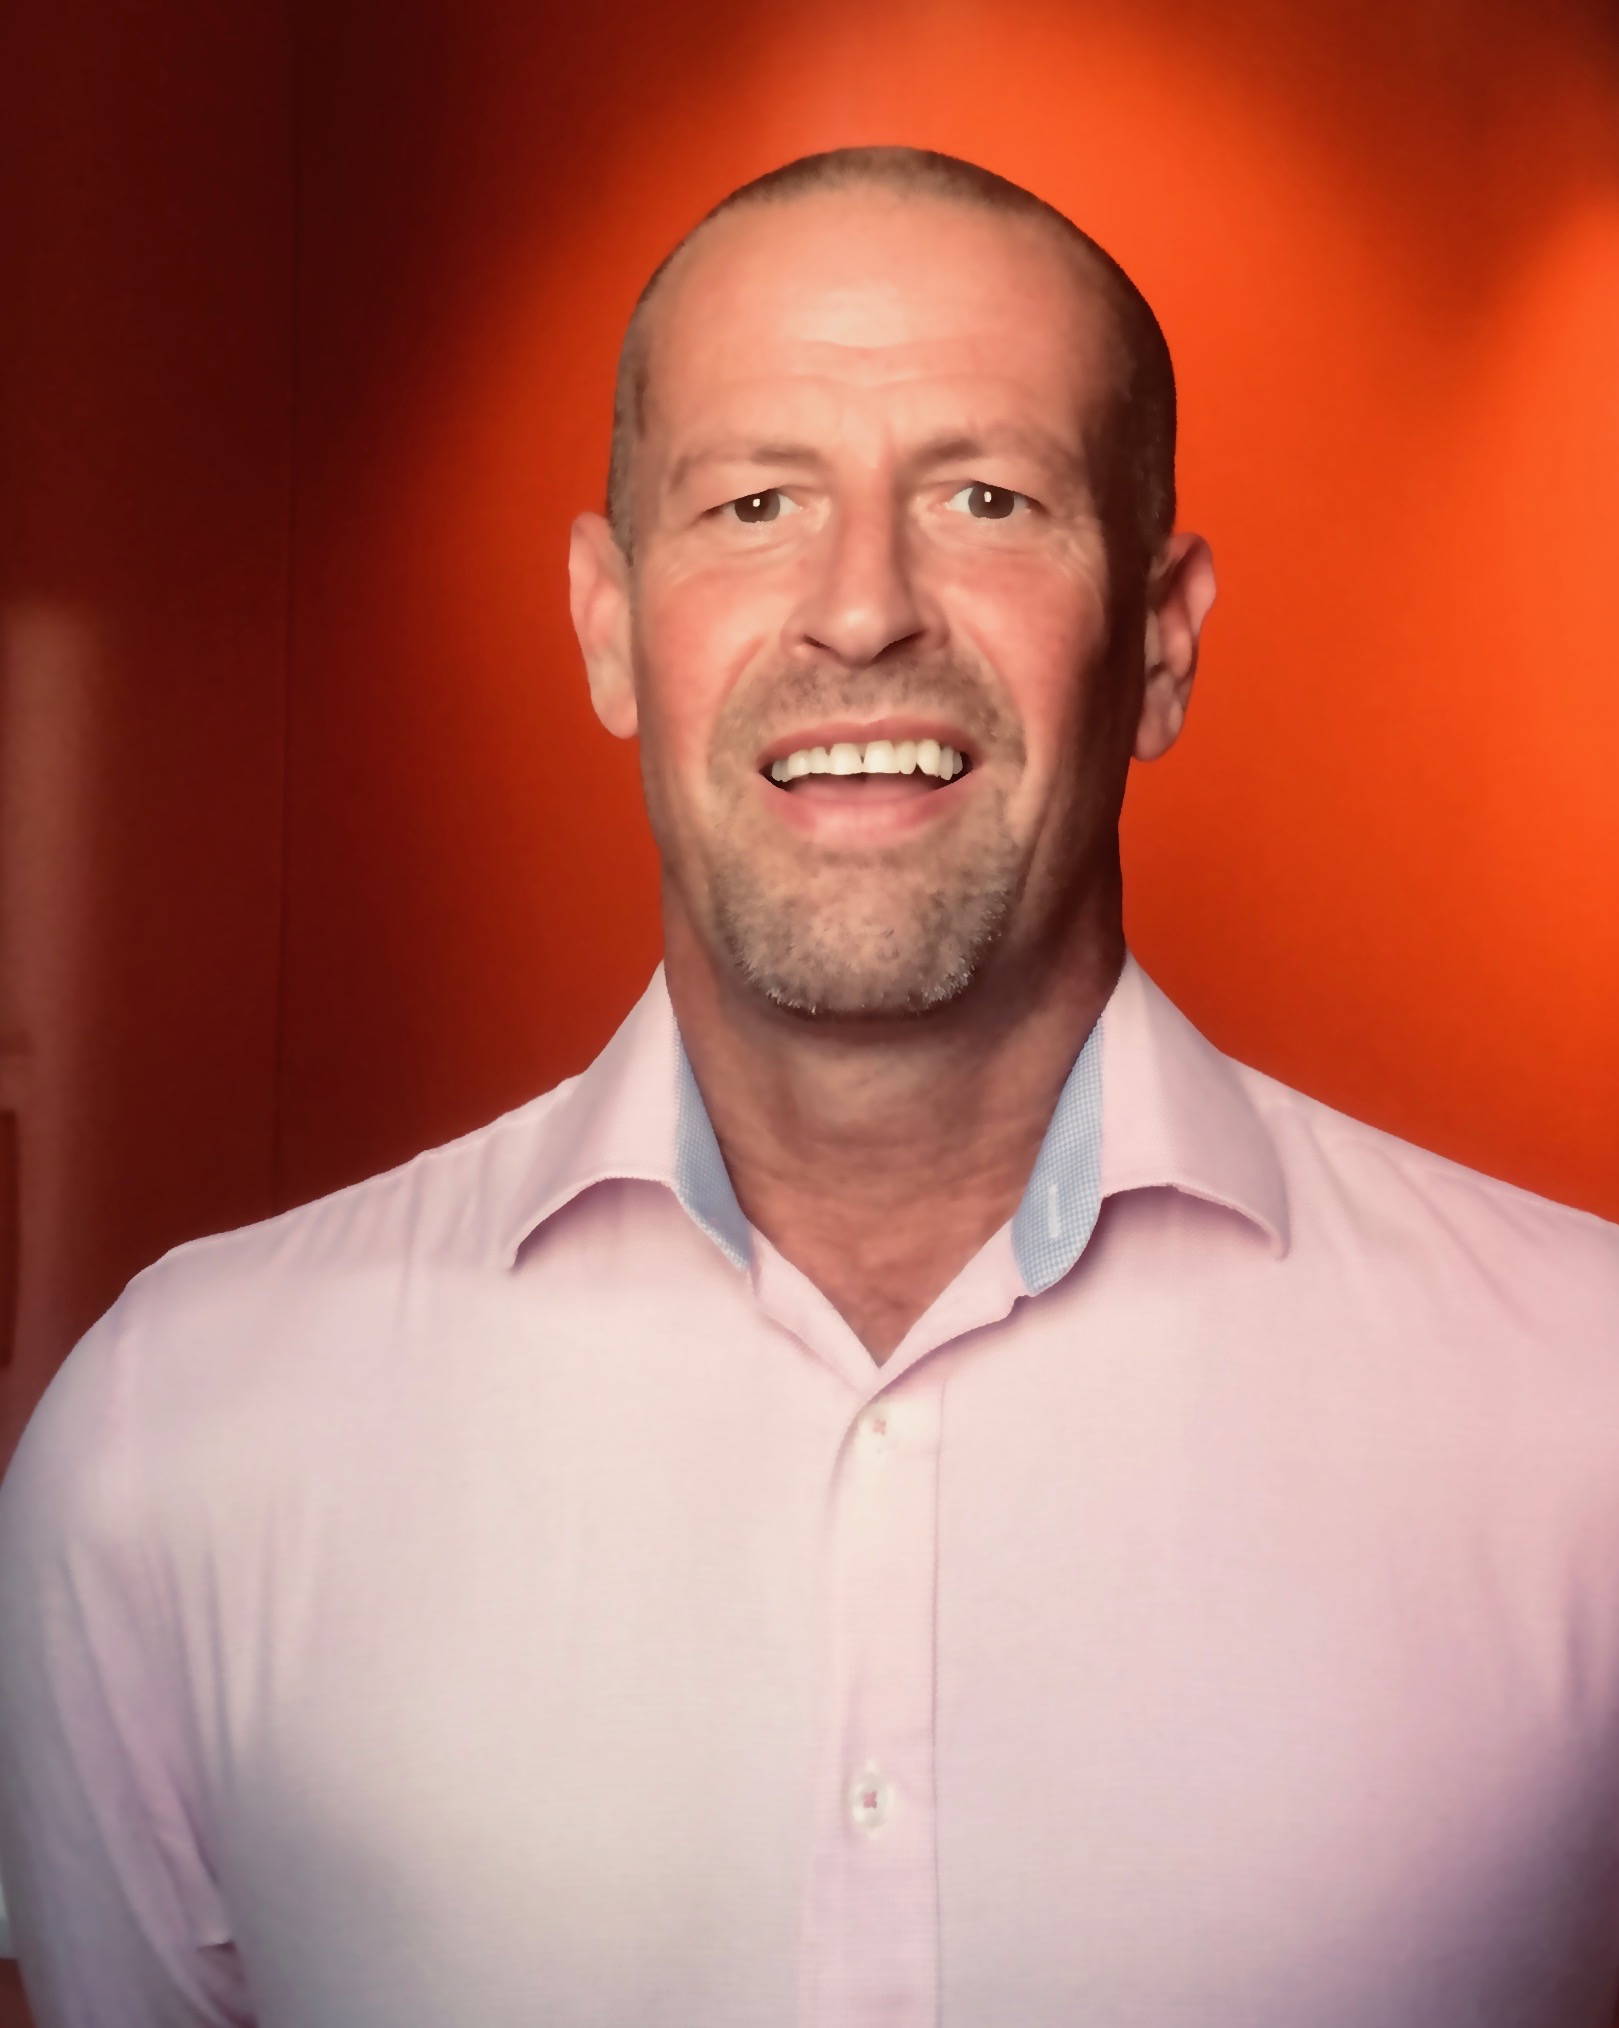 Stuart Craigen joins The 8 Agency in the role of digital marketing manager